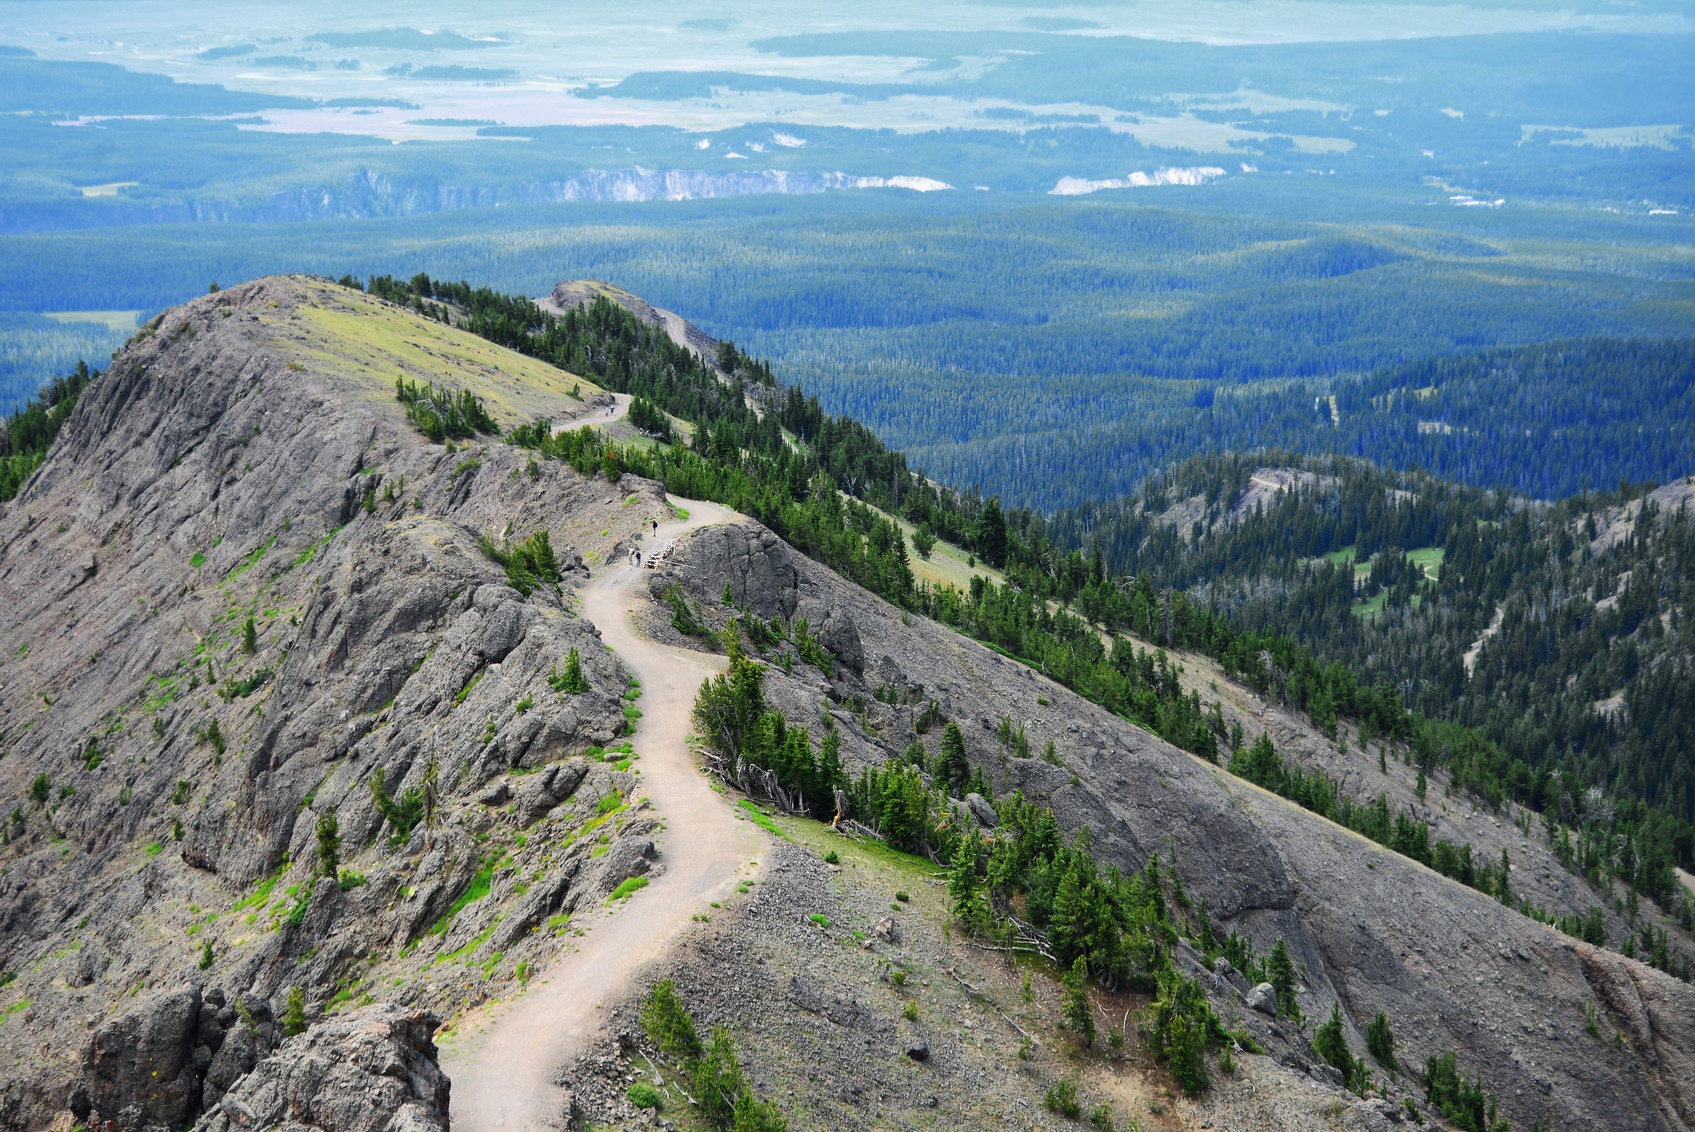 Scenic HIkes in Yellowstone National Park